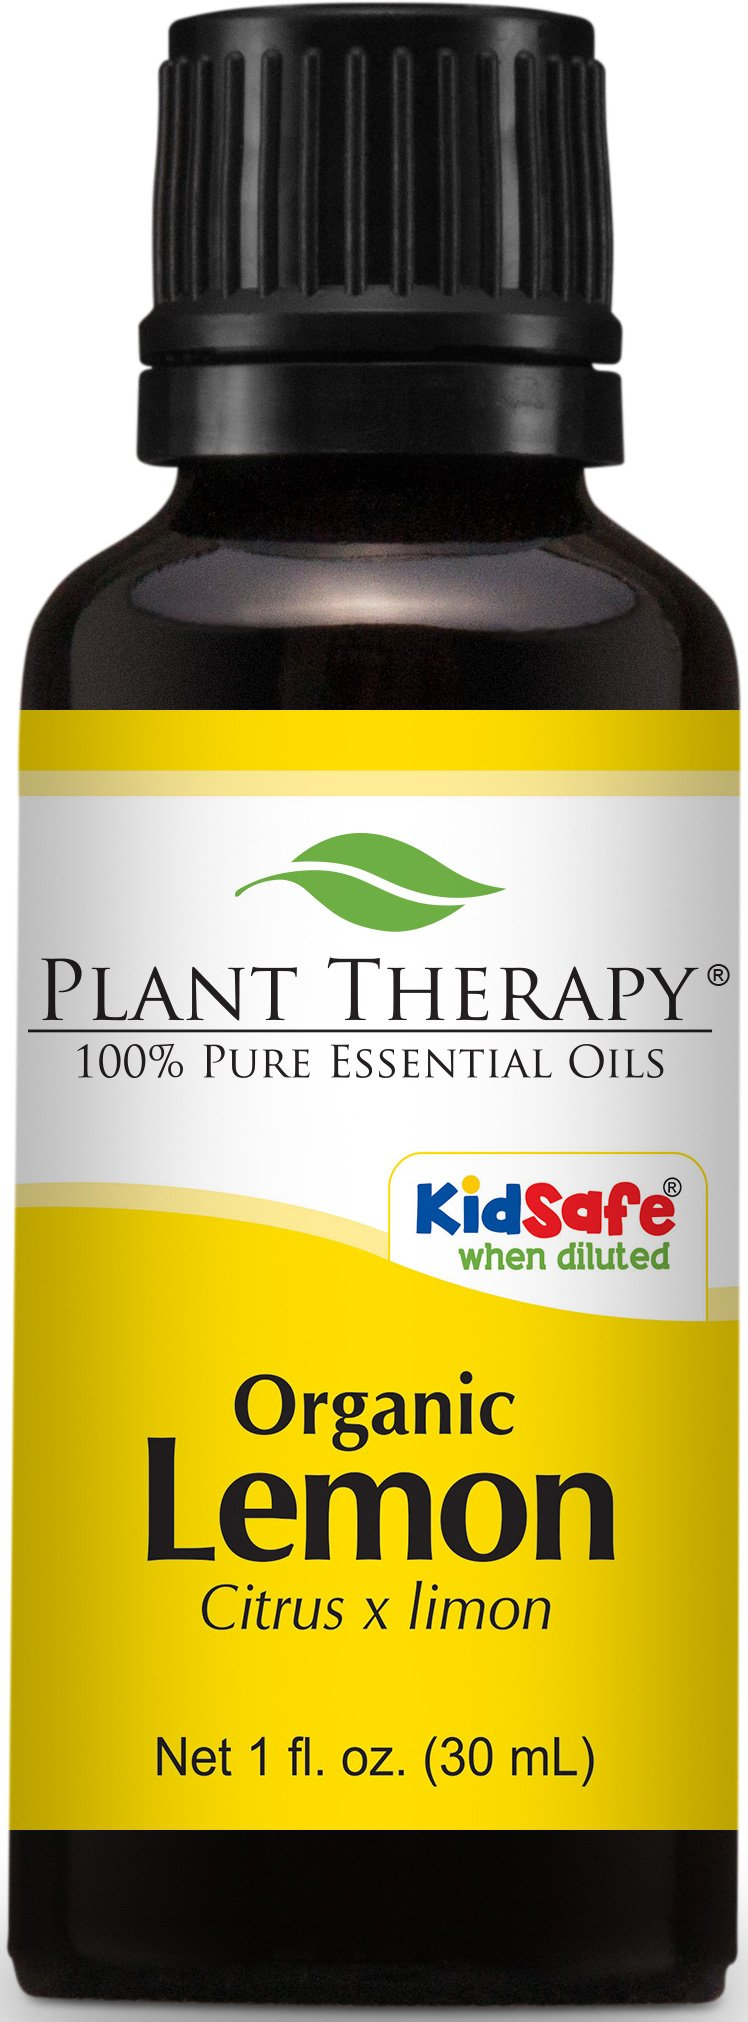 Plant Therapy USDA Certified Organic Lemon Essential Oil. 100% Pure, Undiluted, Therapeutic Grade. 30 mL (1 Ounce).